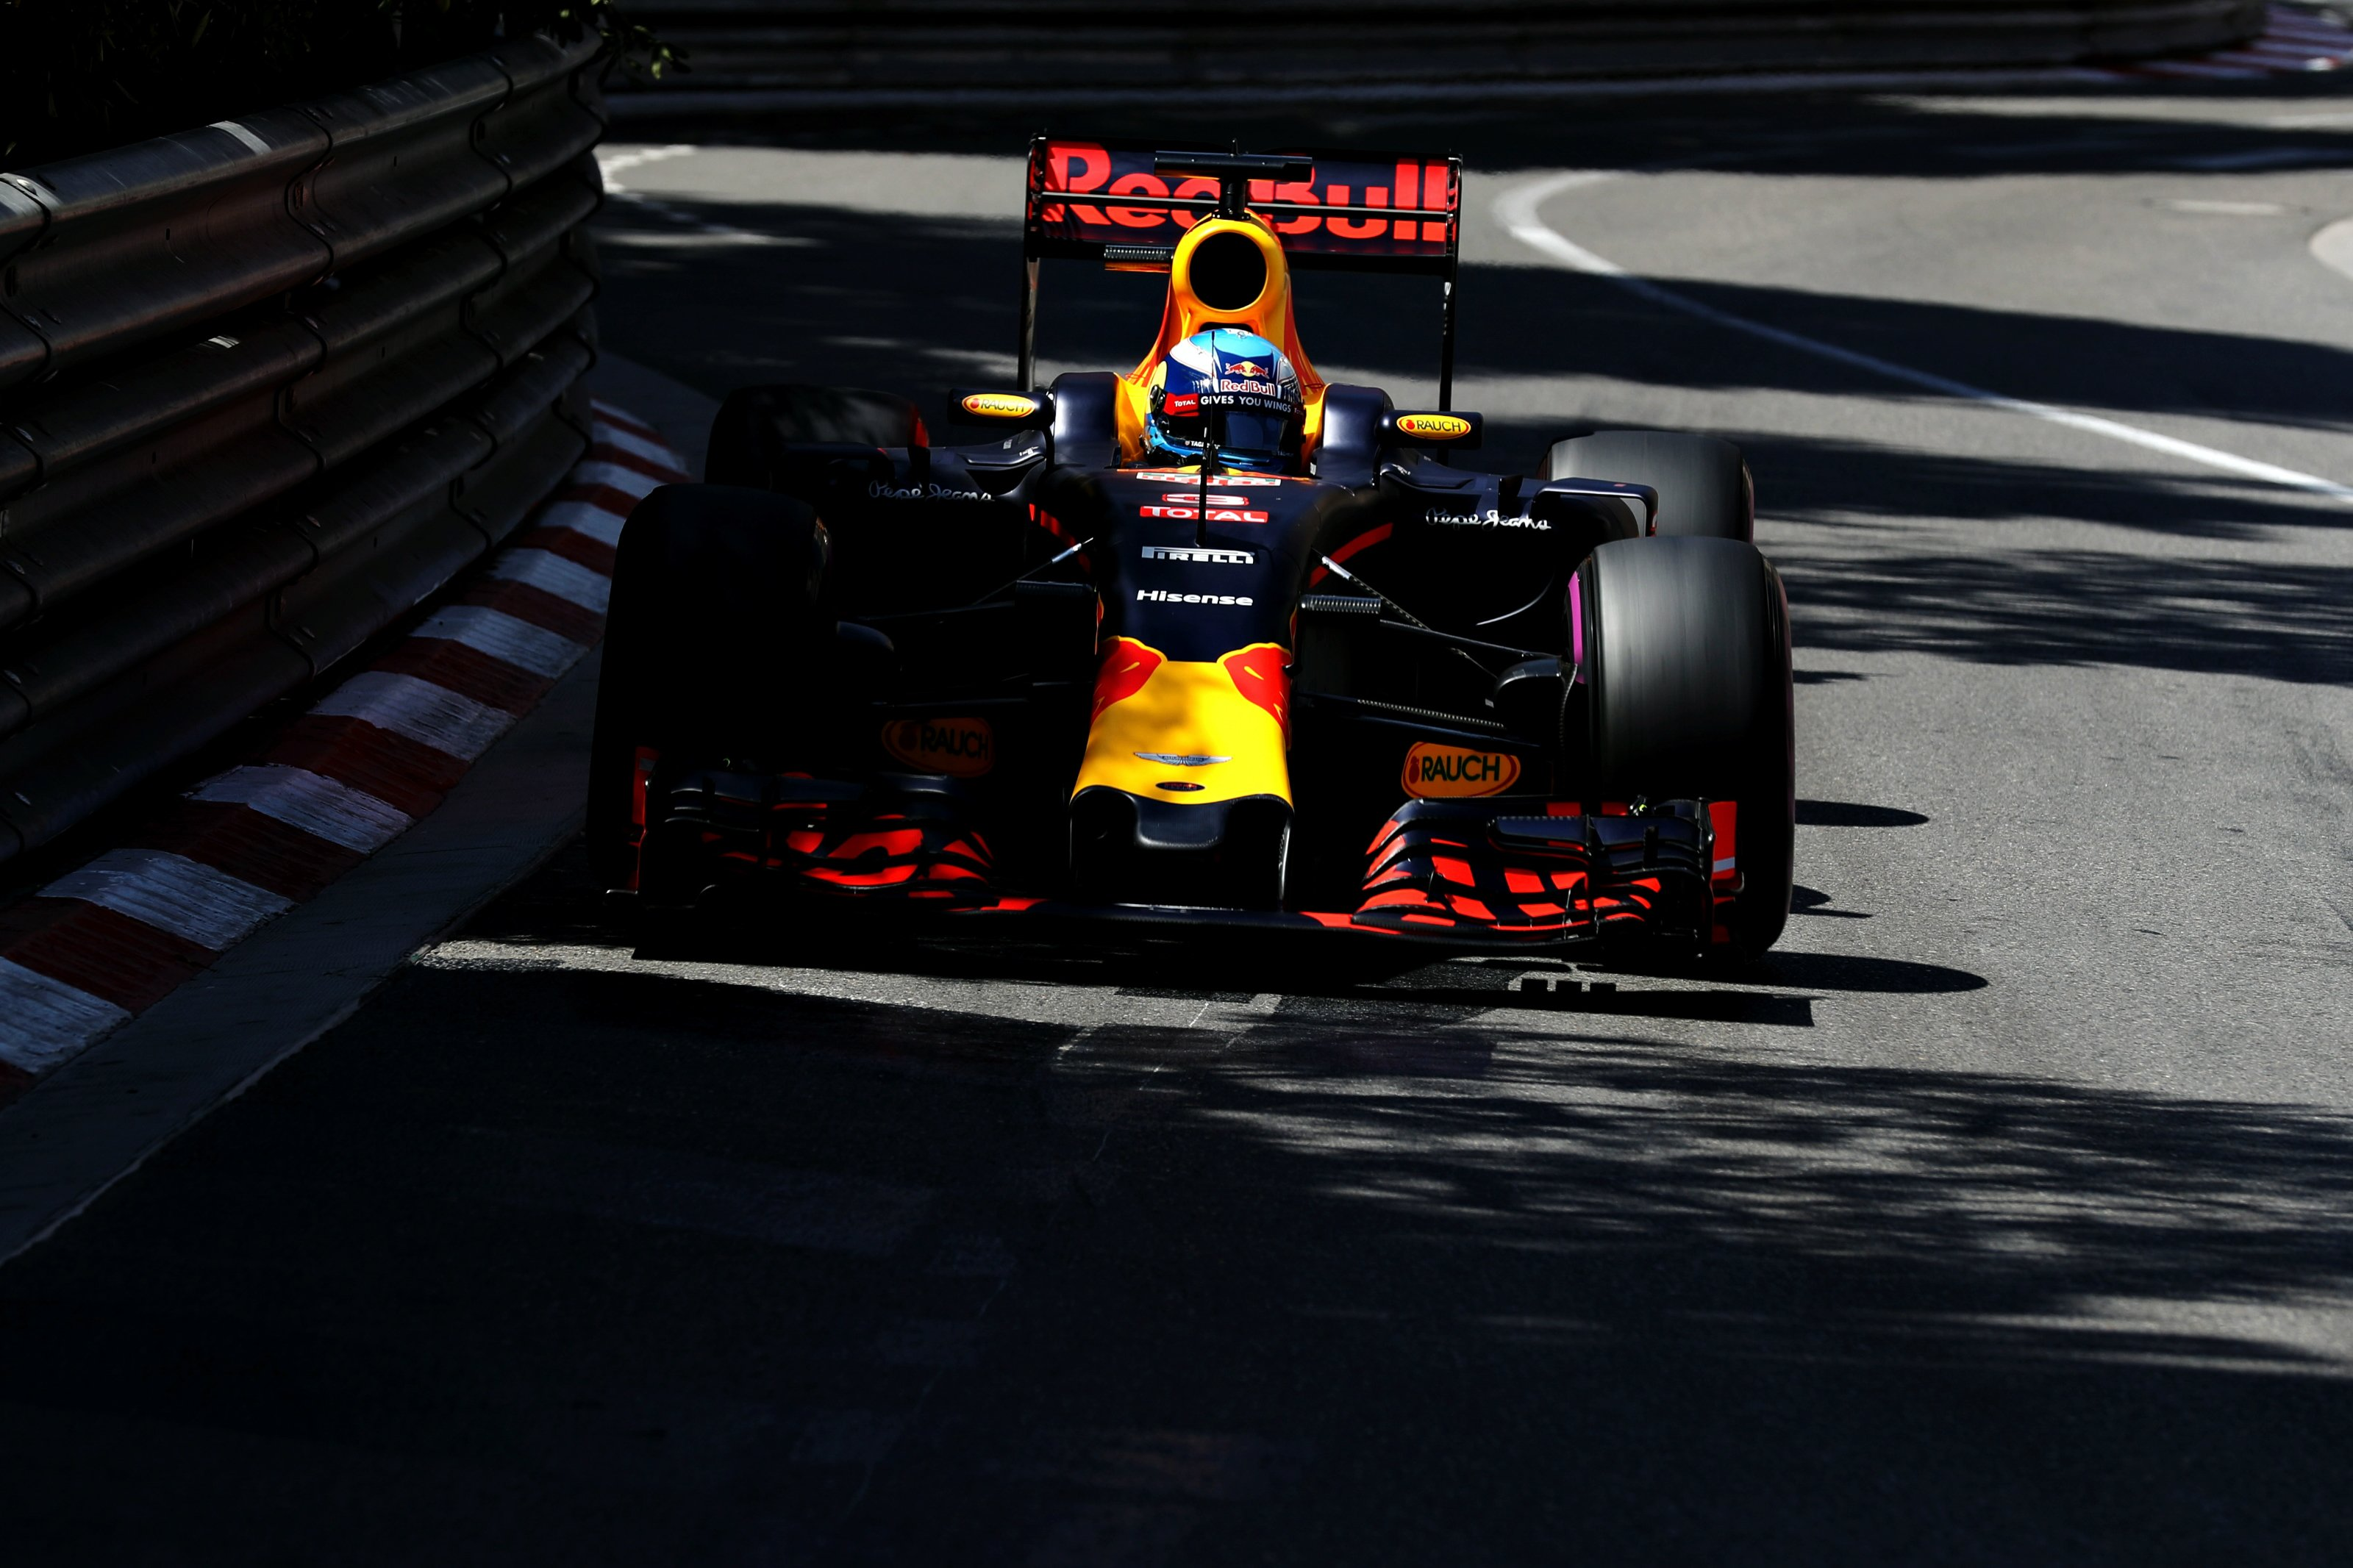 Daniel Ricciardo at the 2016 Monaco Grand Prix